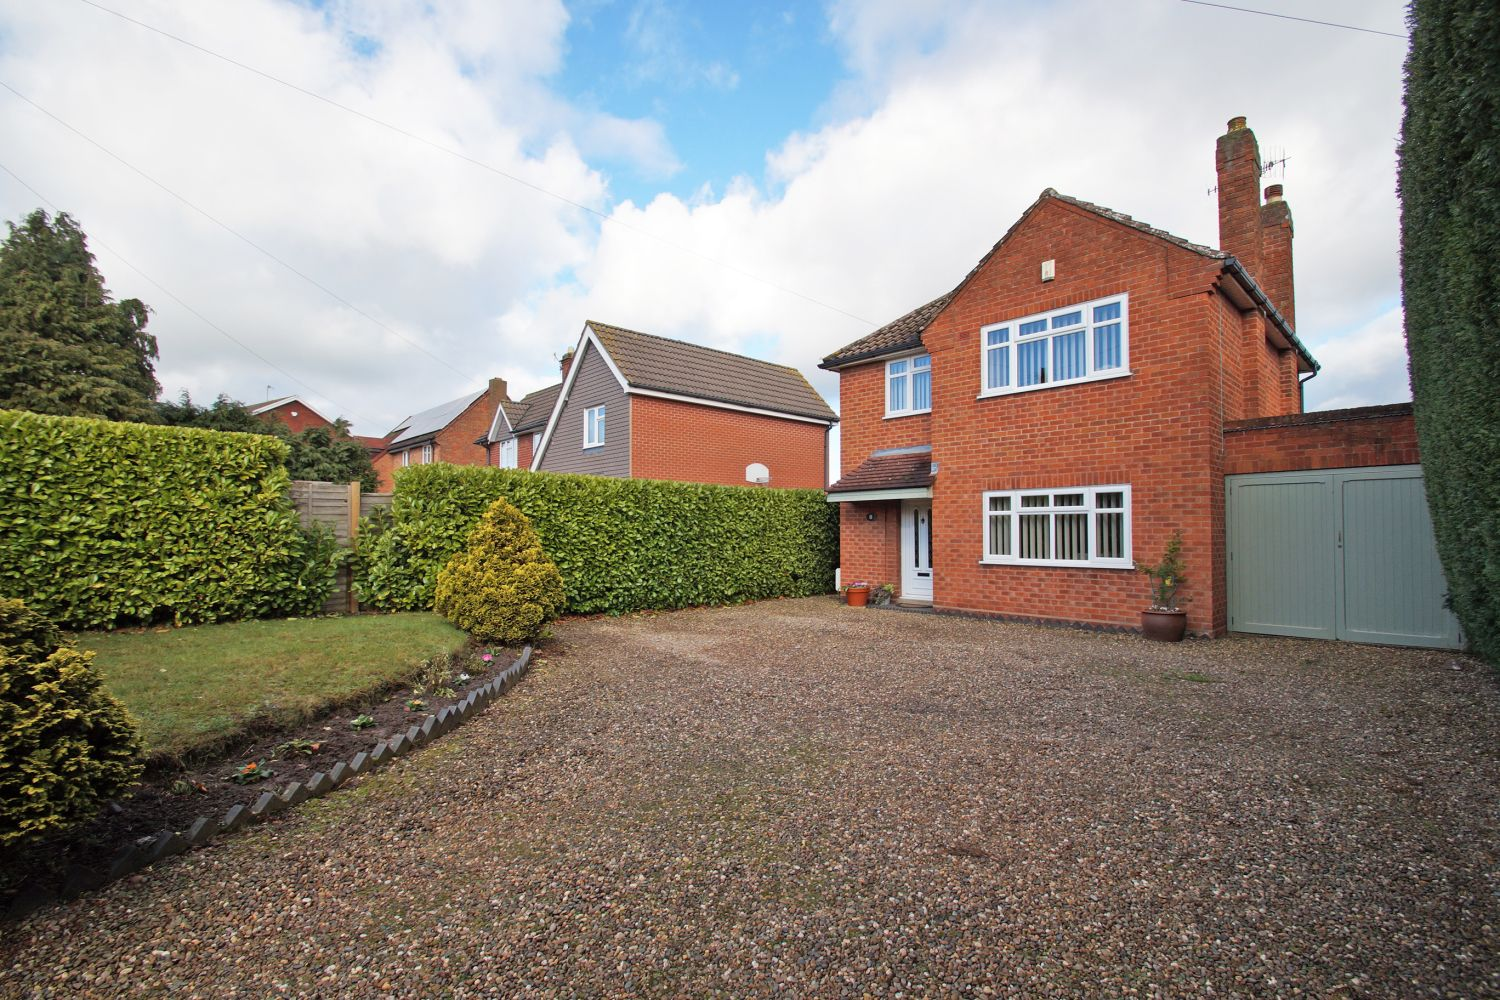 3 bed detached for sale in Fox Lane, Bromsgrove 2